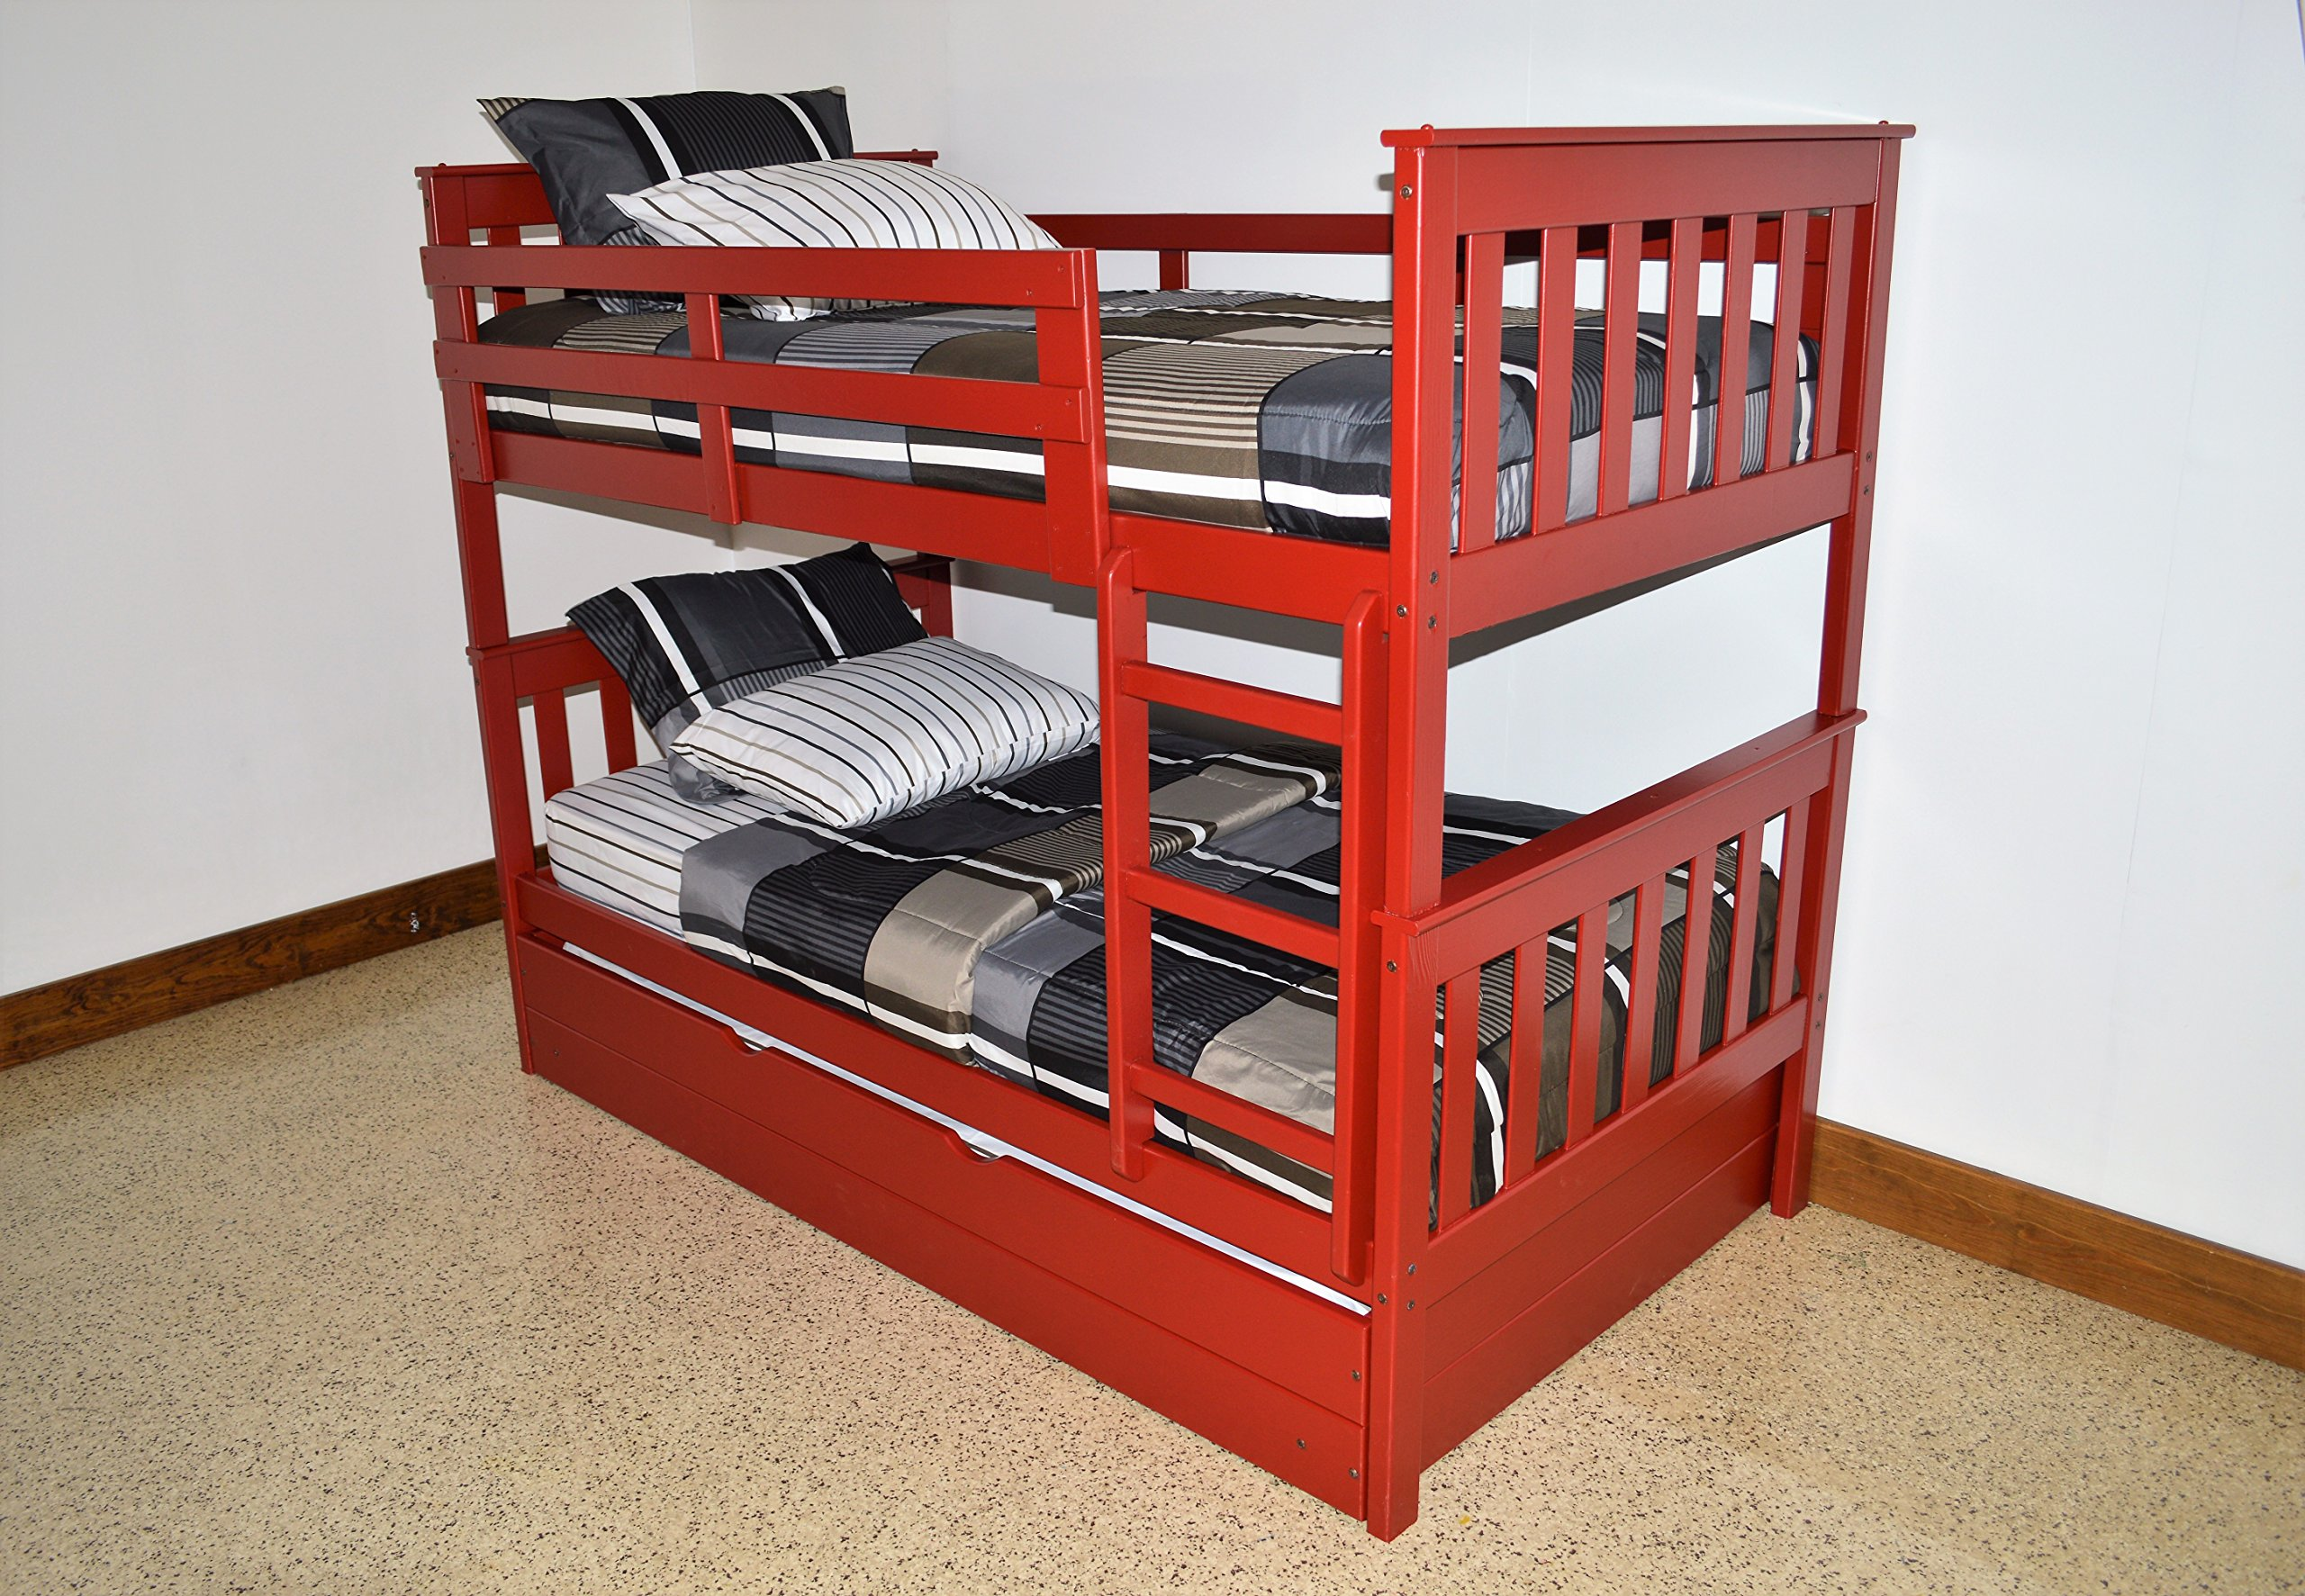 BEST KIDS BUNK BEDS WITH TWO UNDER BED STORAGE DRAWERS, Twin Over Twin Mission Bunkbeds, Space Saving Organizing Rolling Bins, Hold Games Clothes Toys, Sturdy & Durable, Classic Red